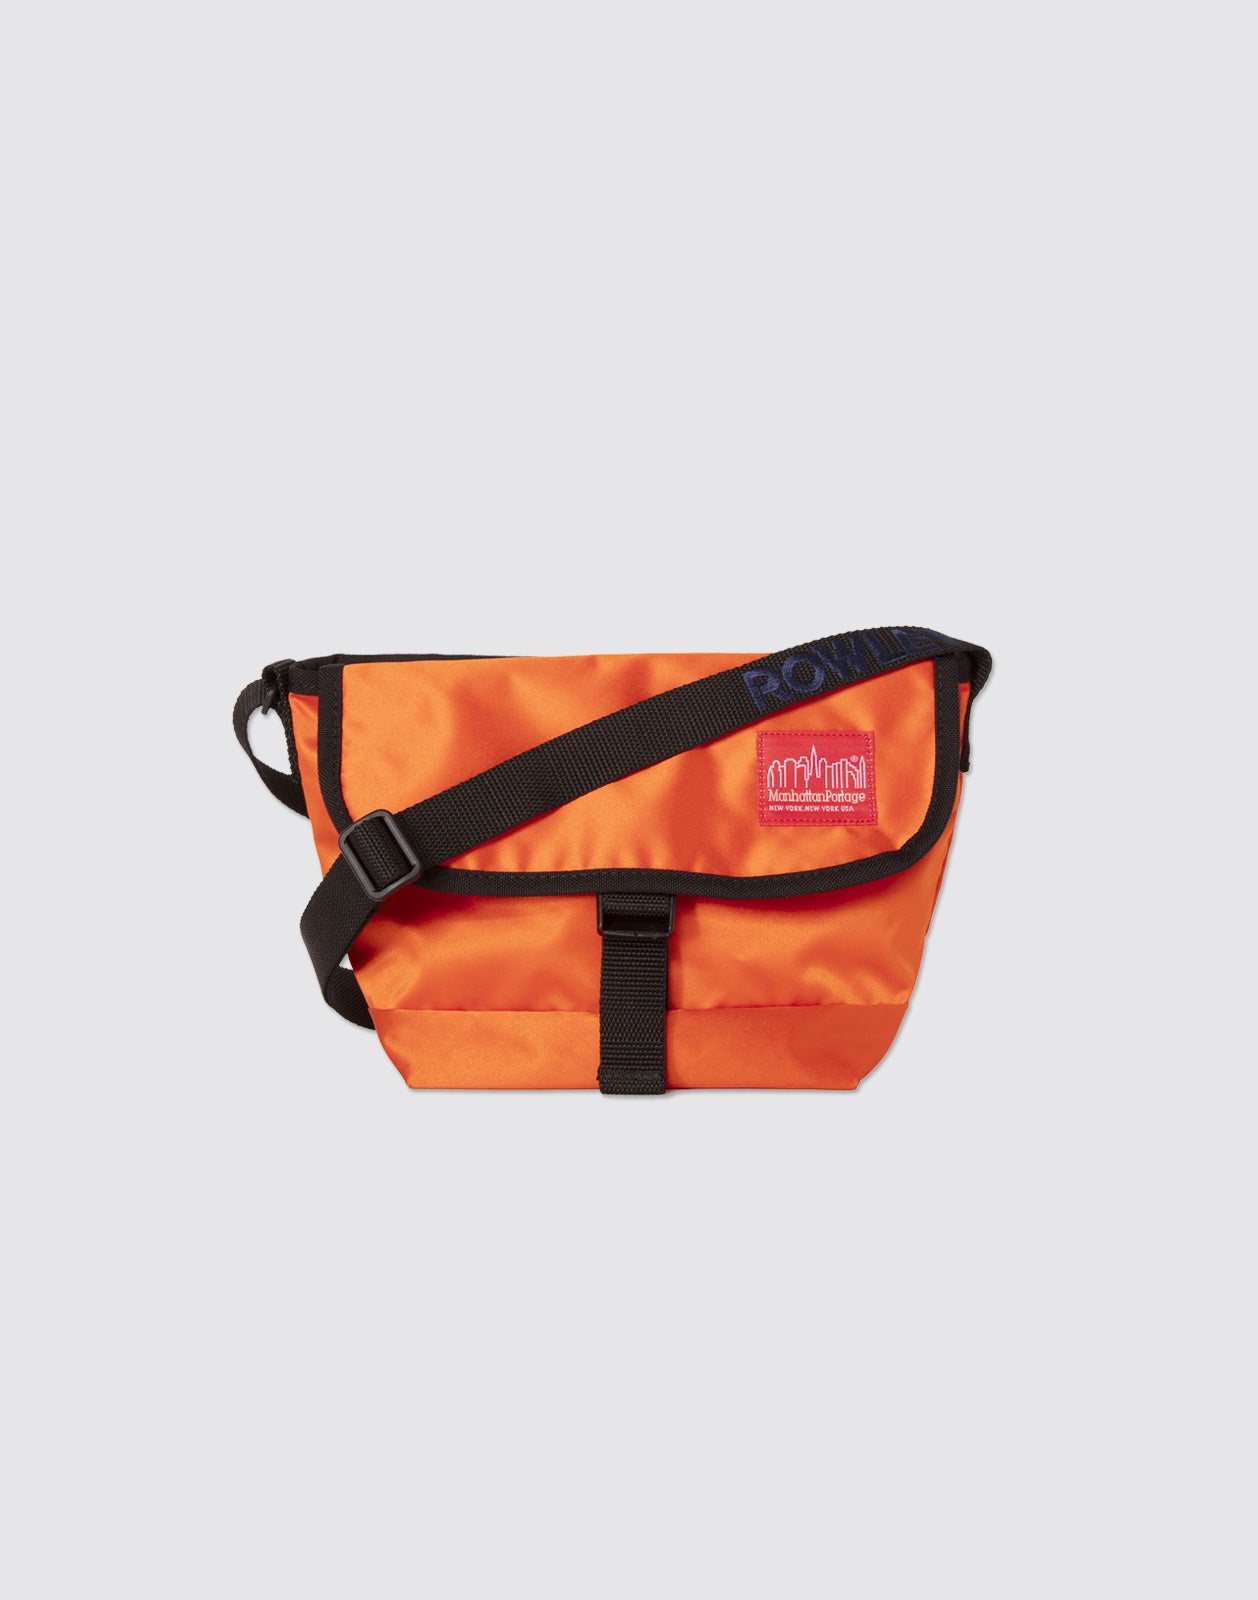 Front detail shot of Blood Orange Mini Manhattan Portage Messenger Bag with front buckle and arm strap.